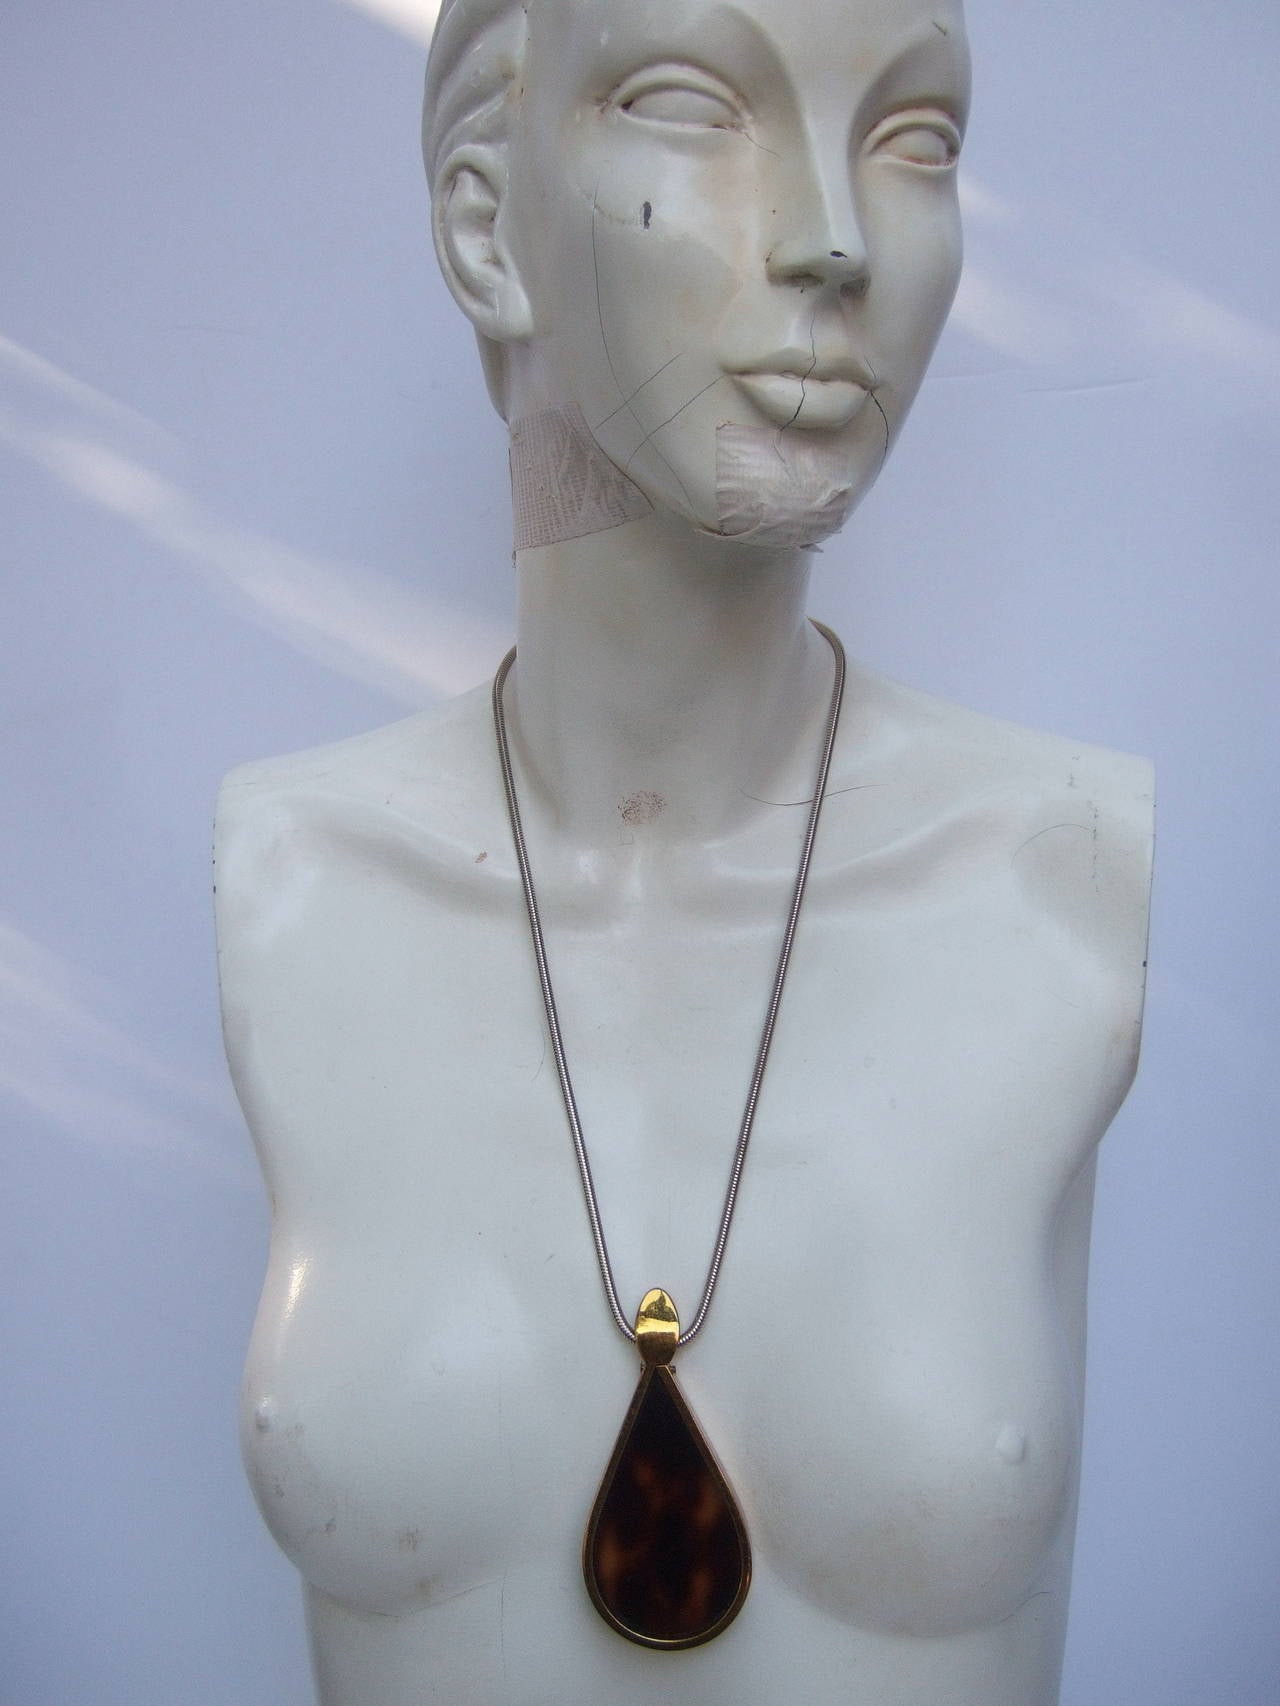 Women's Judith Leiber Mod Tortoise Shell Lucite Pendant Necklace ca 1970s For Sale